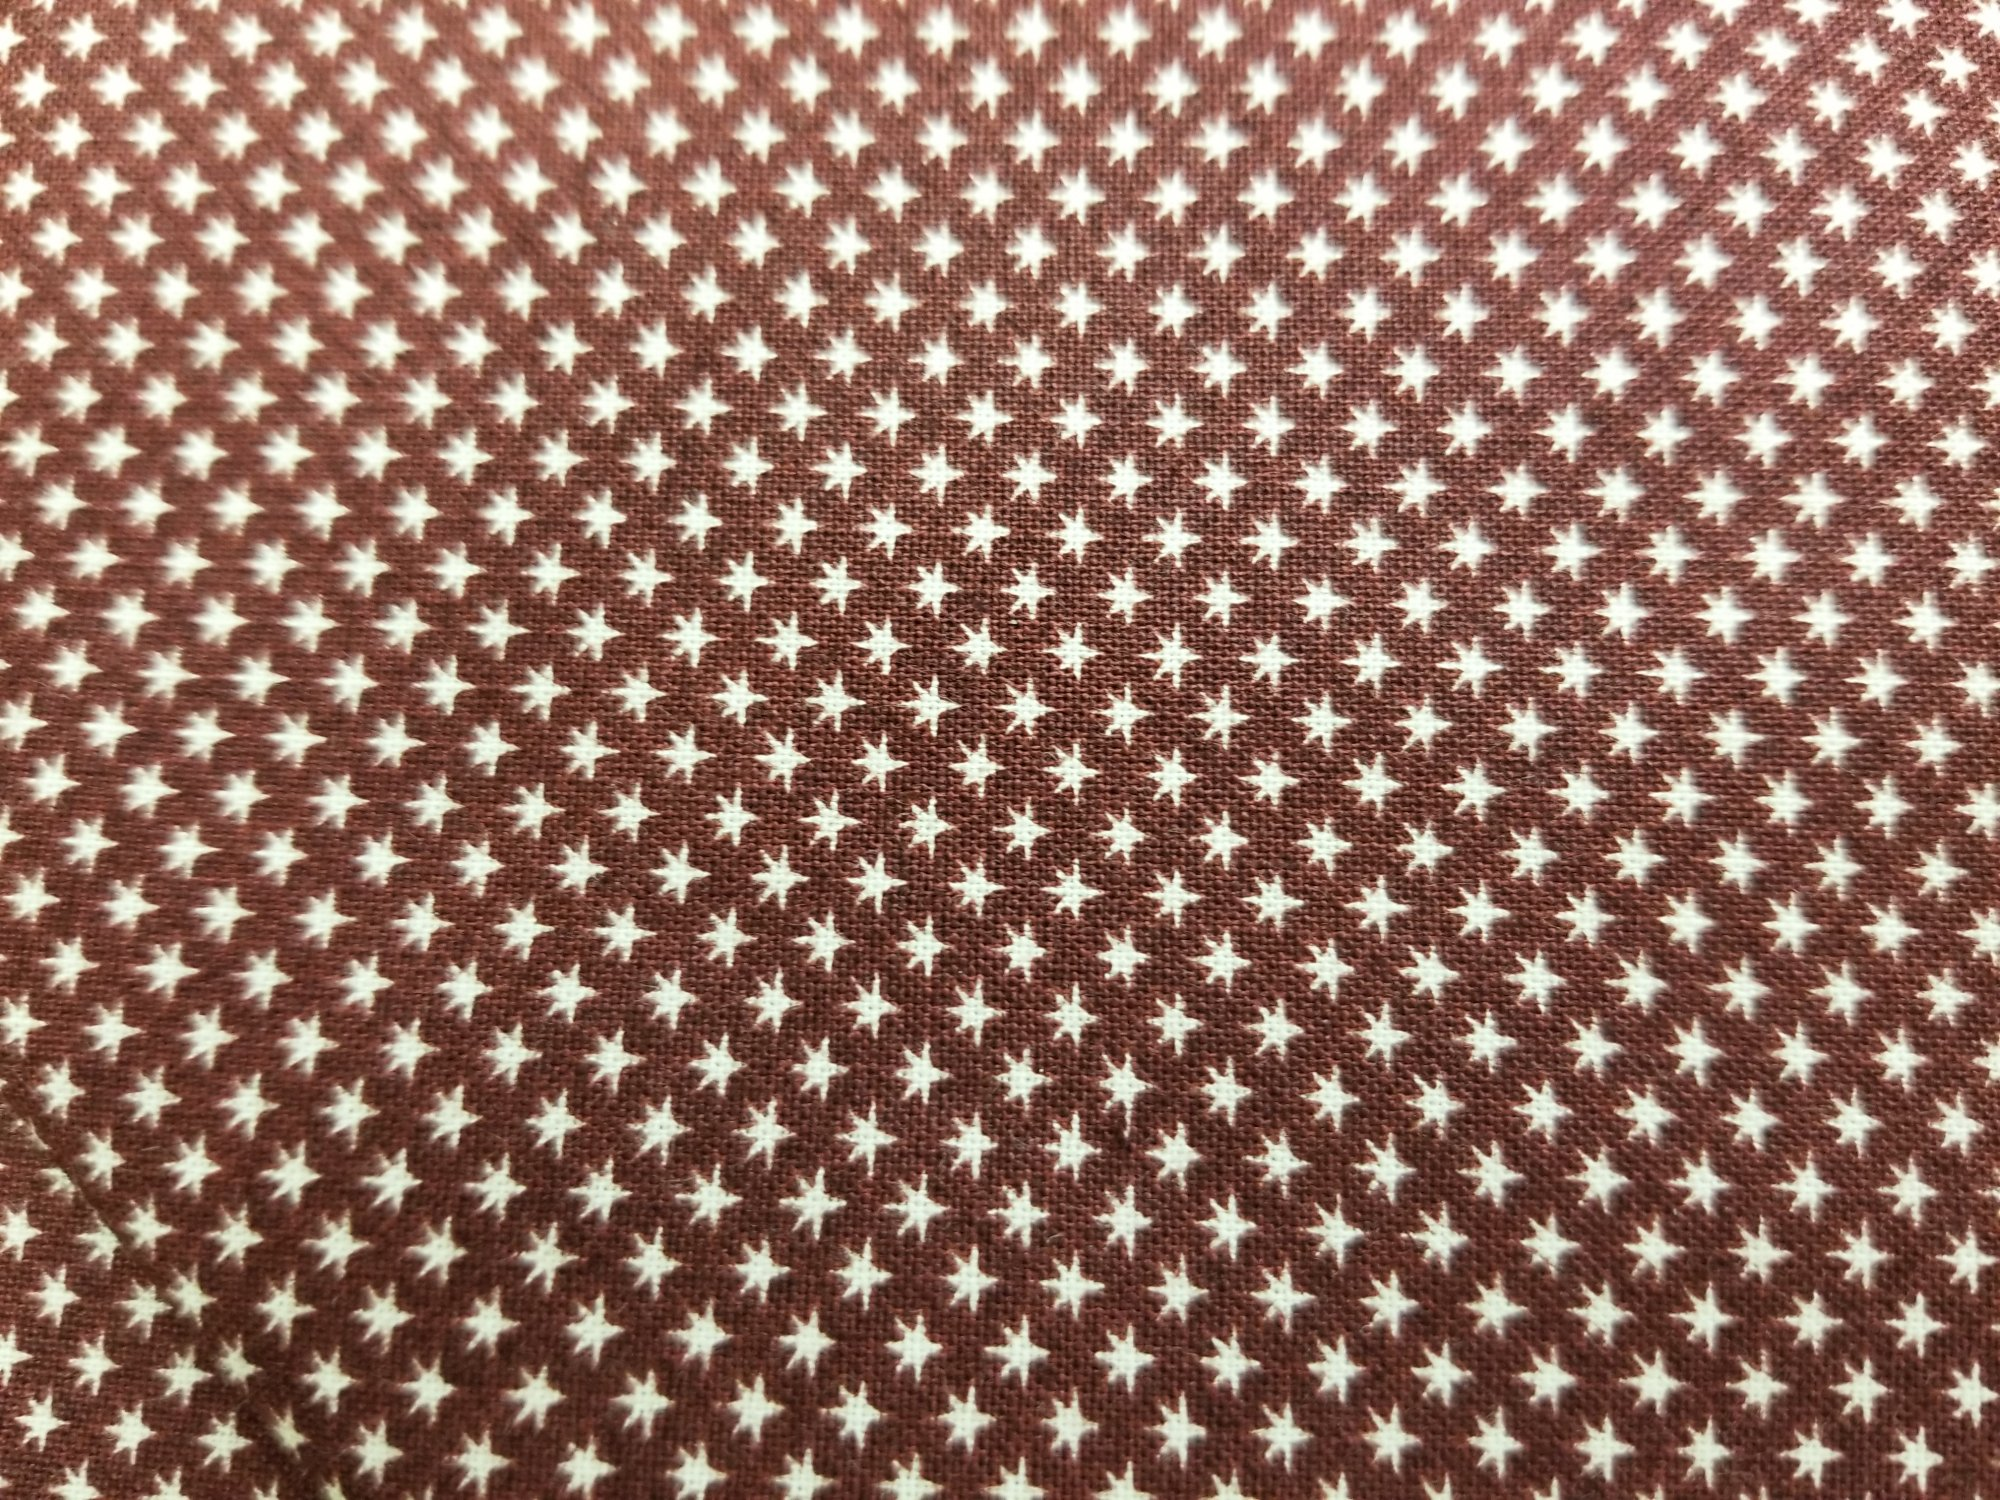 General's Wives from Windham Fabric #33266-1- Maroon